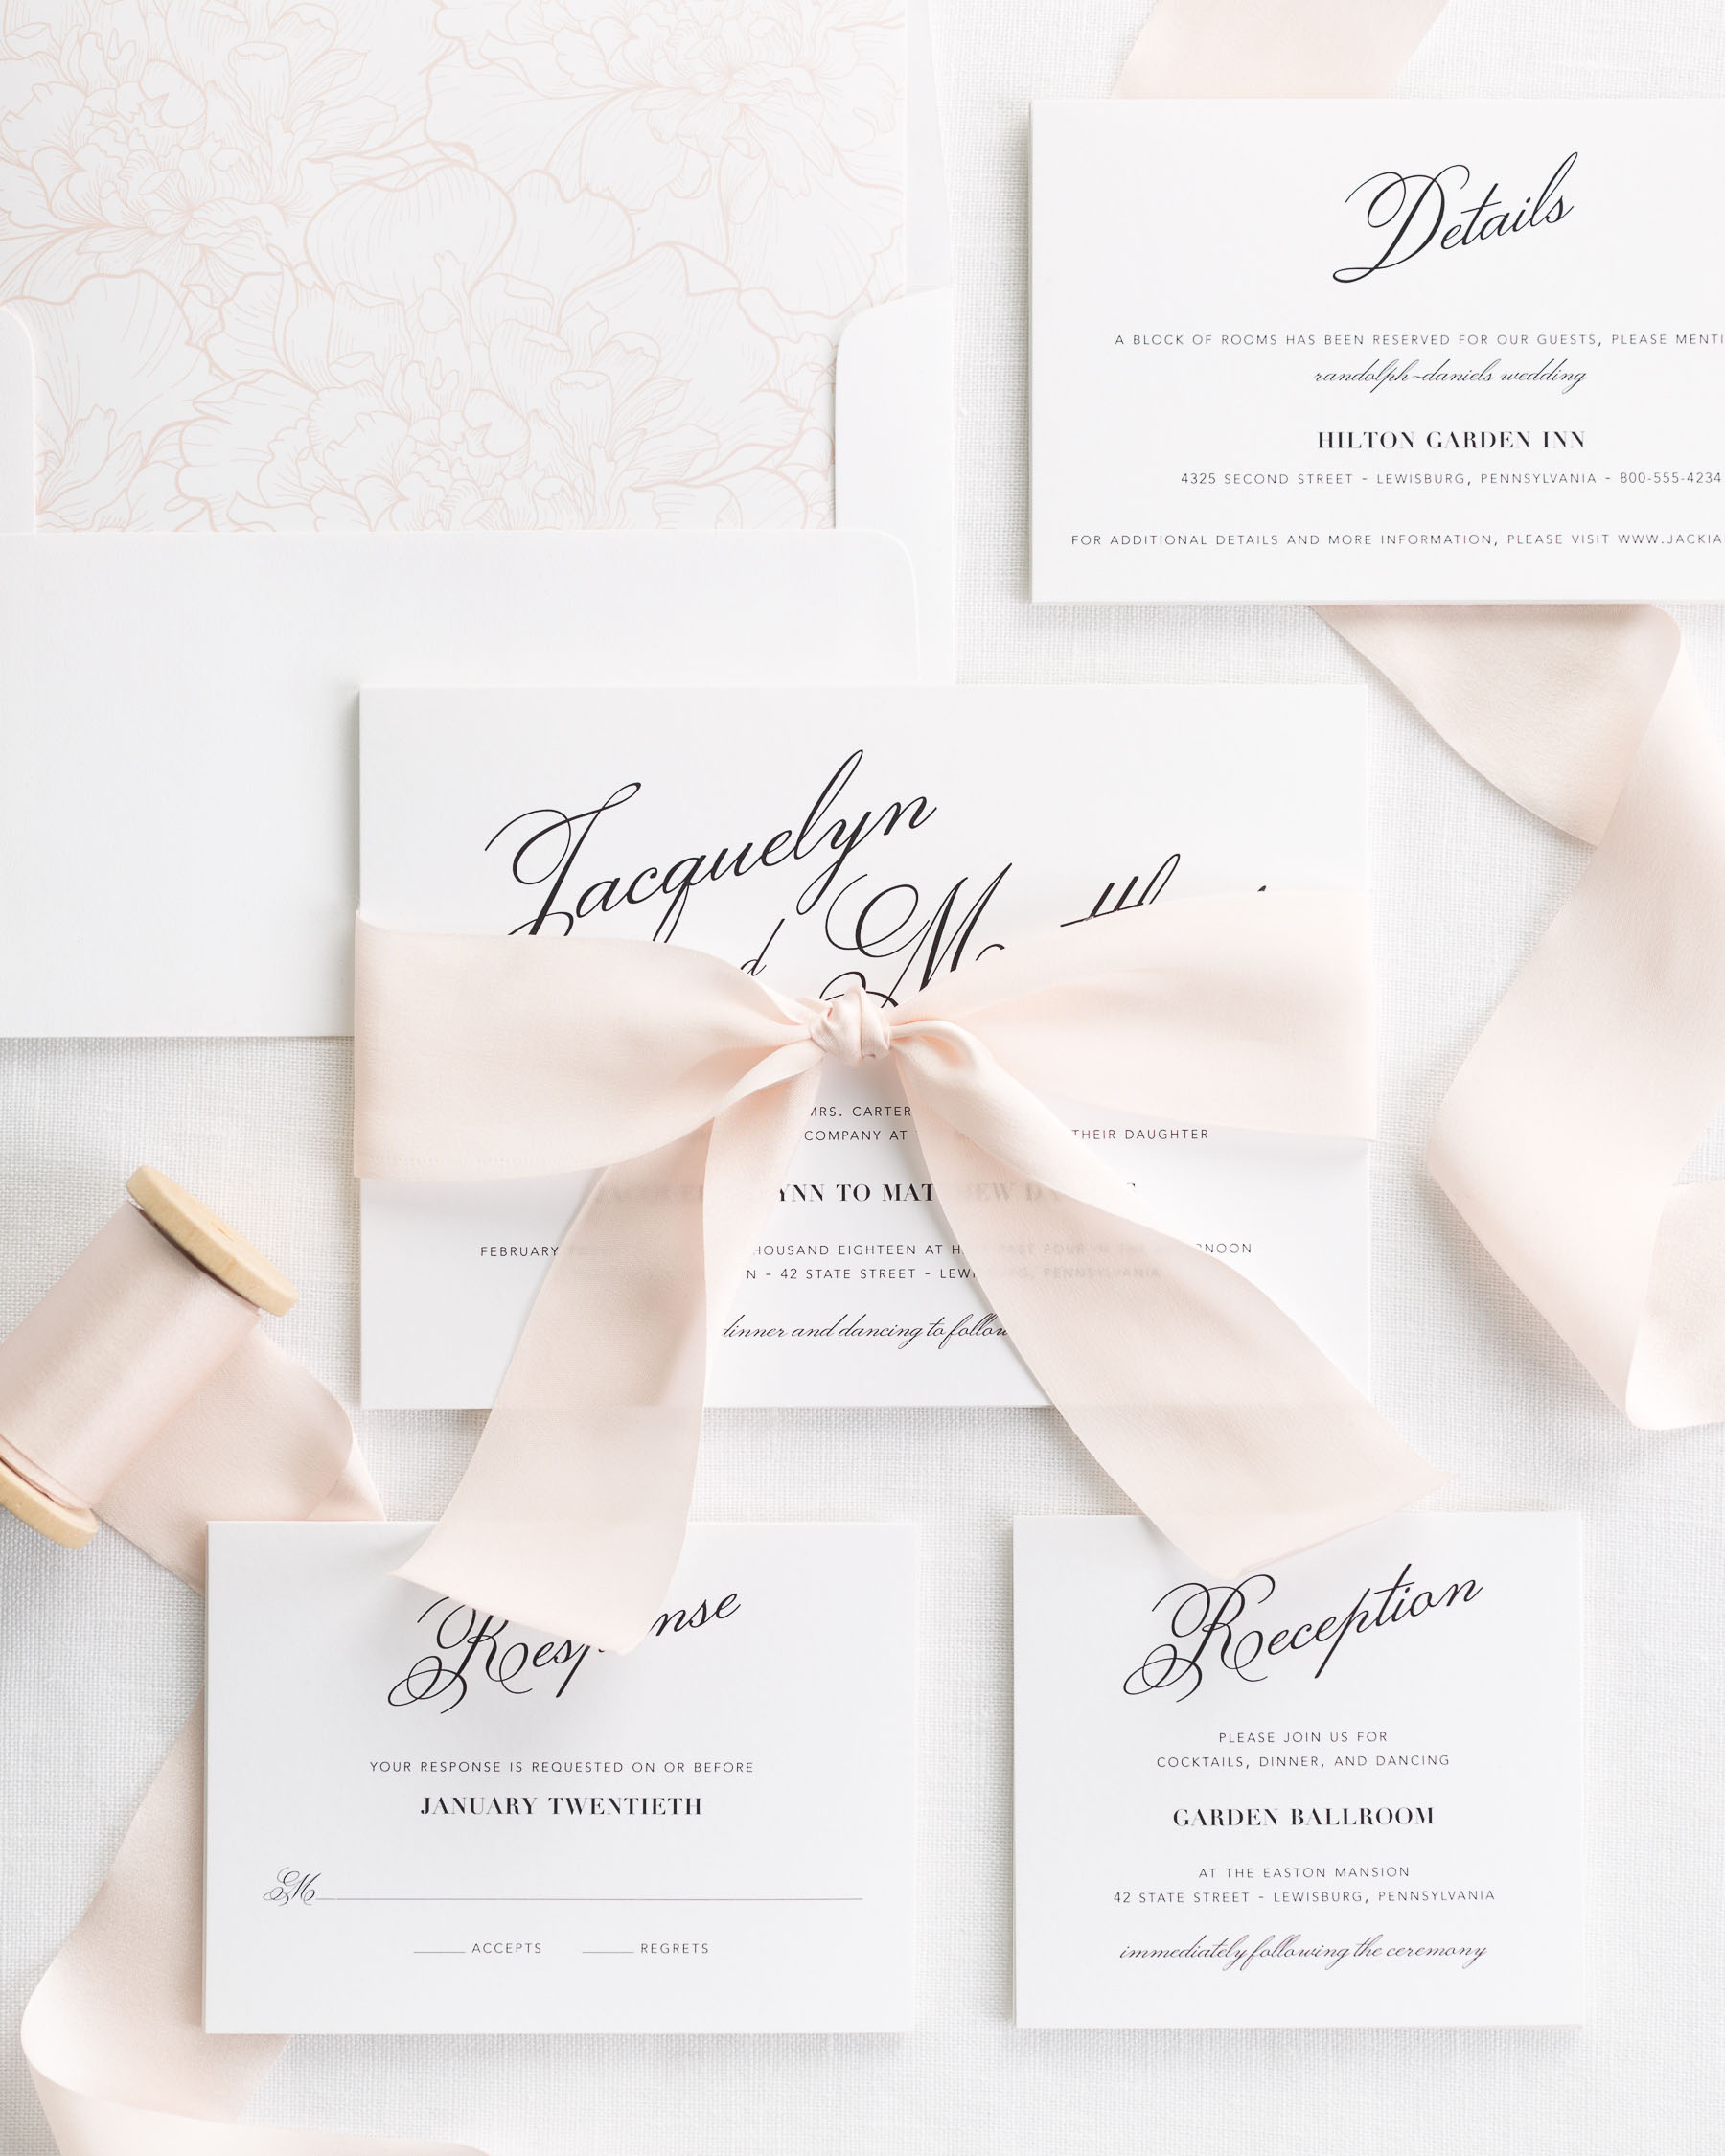 Wedding Invitations With Ribbons: Vintage Romance Ribbon Wedding Invitations